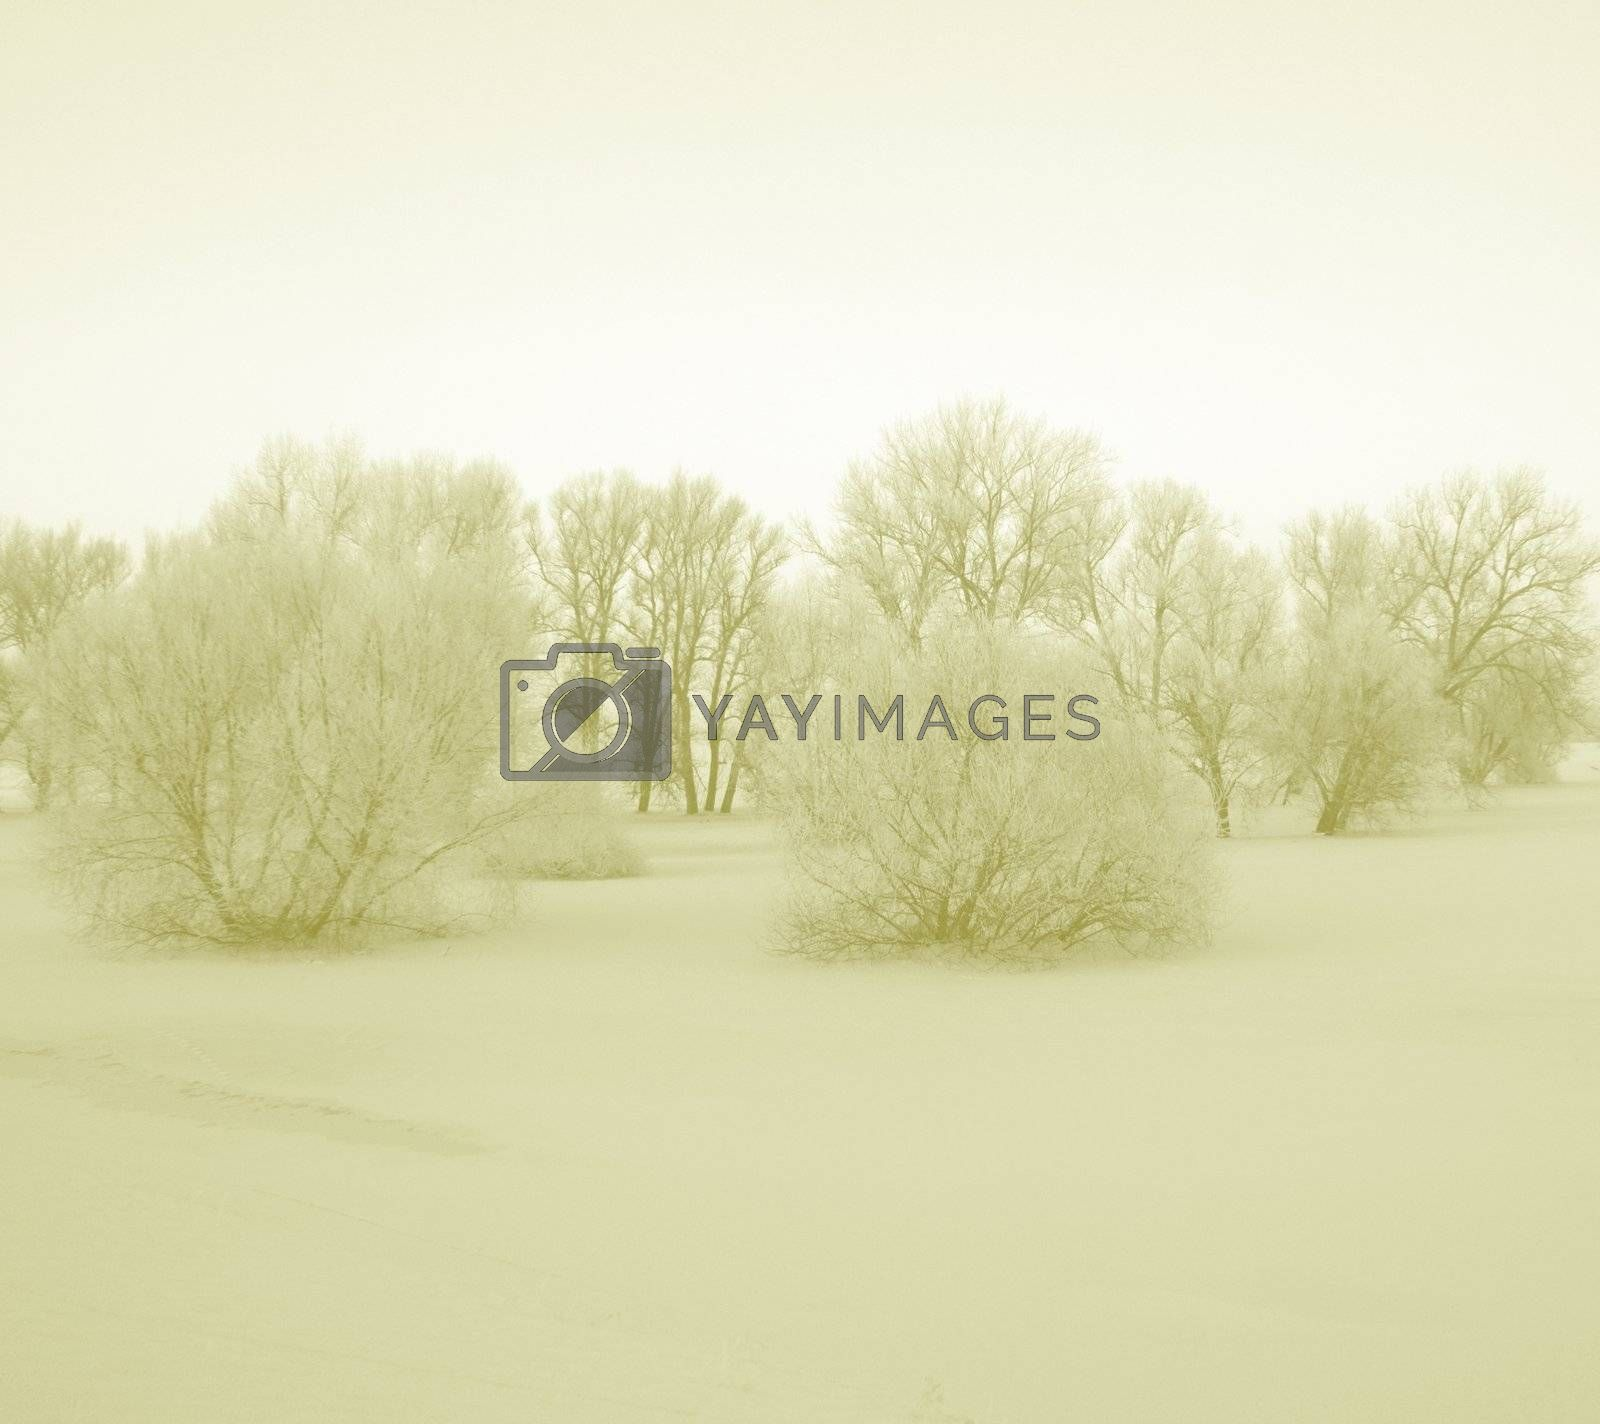 Bushes in the winter seem very sleepy by soft lighting. Snowed in meadows in the Elbe Valley a nature protection area.